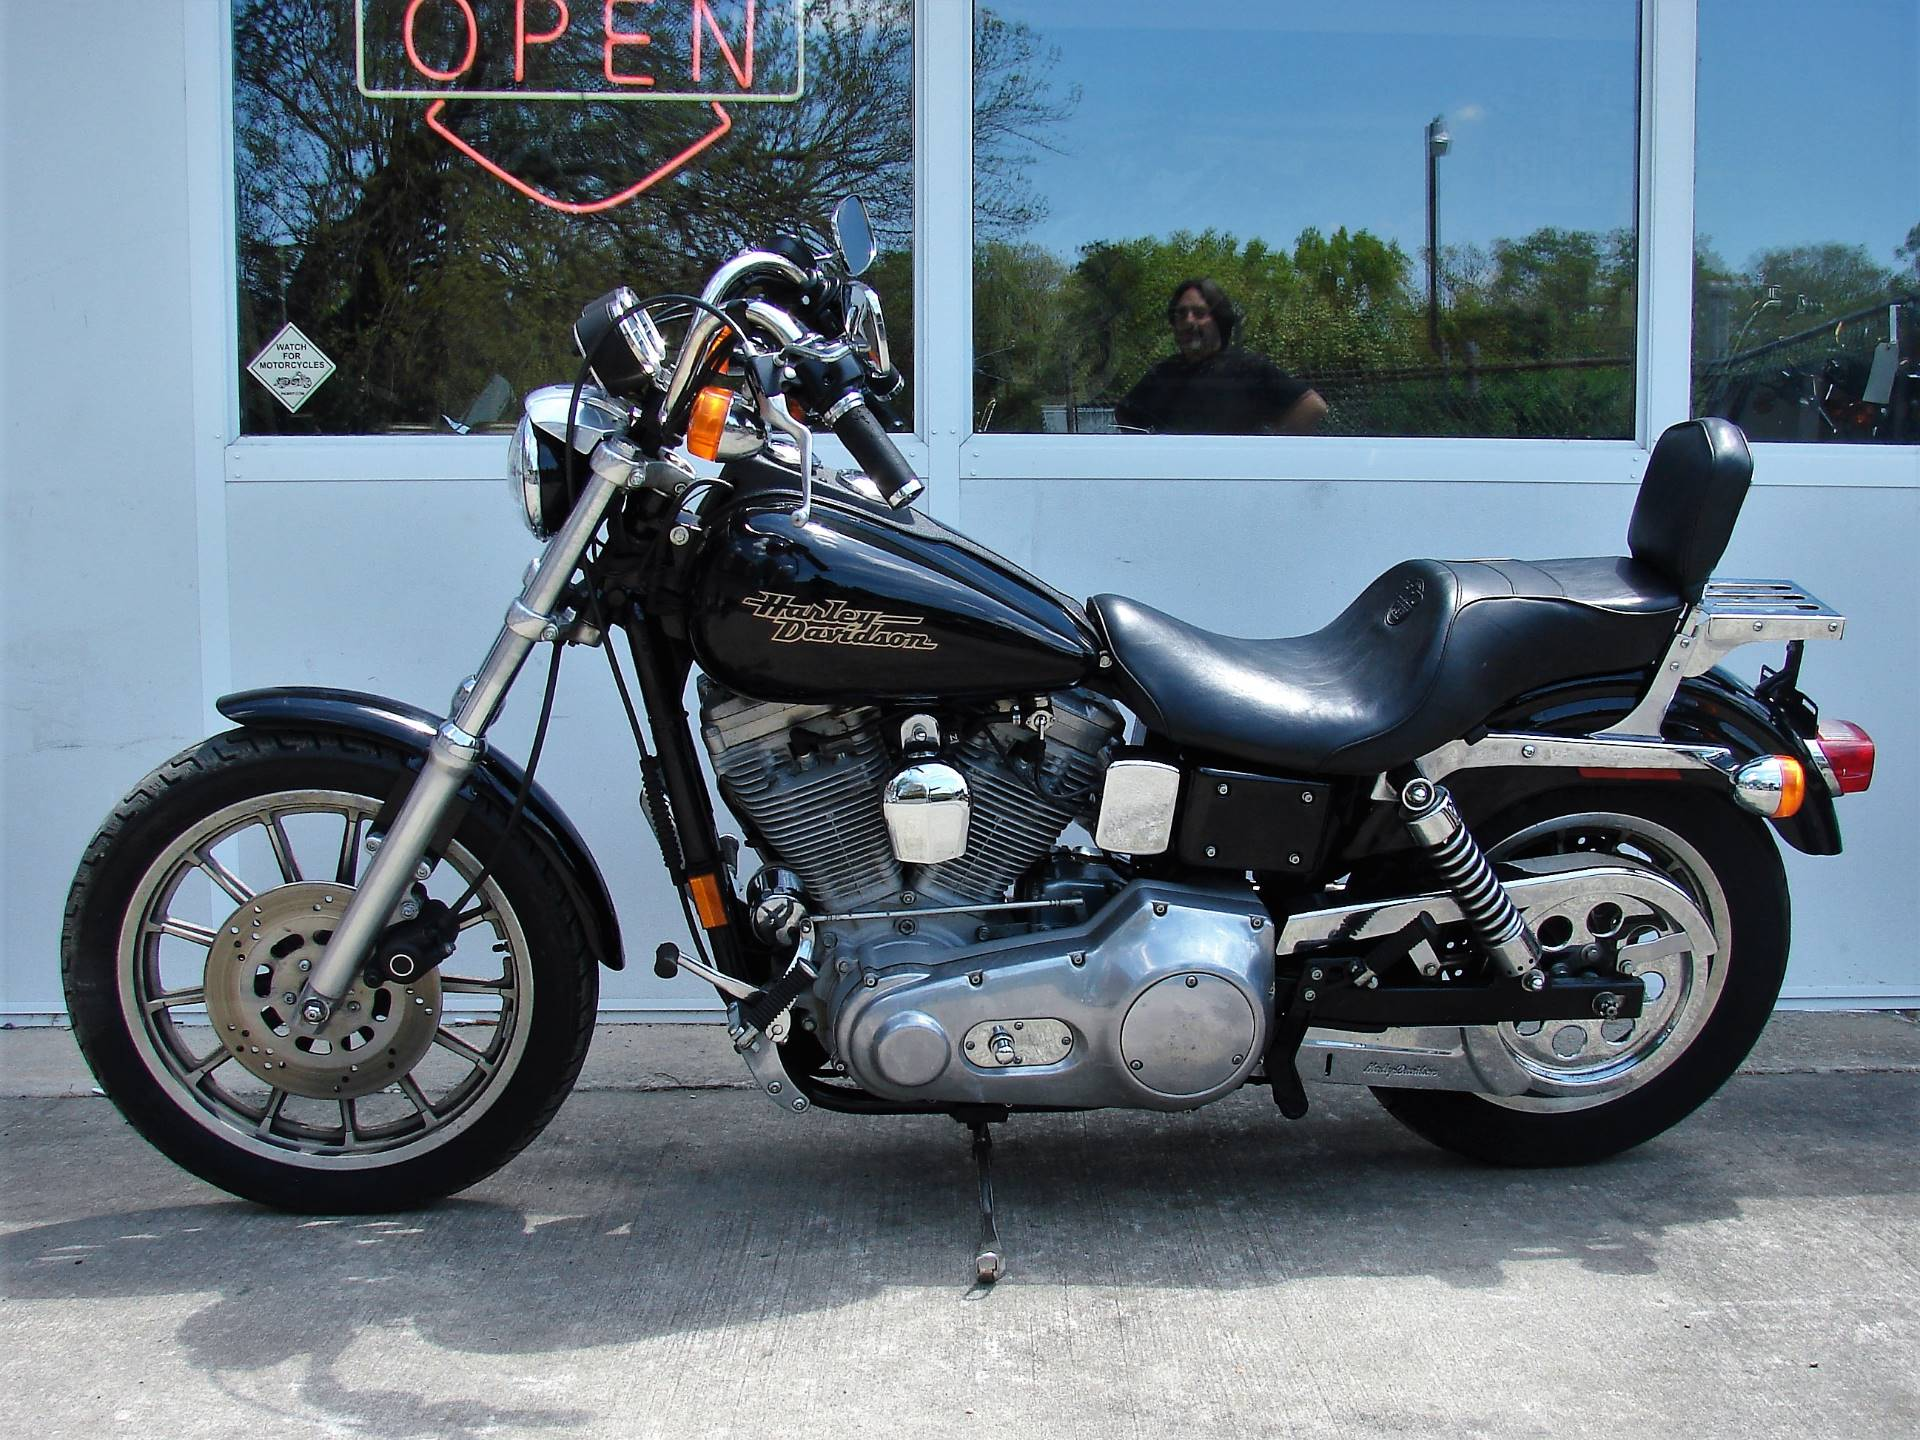 1998 Harley-Davidson Dyna Super Glide  (Black)  w/ Low Miles! in Williamstown, New Jersey - Photo 6